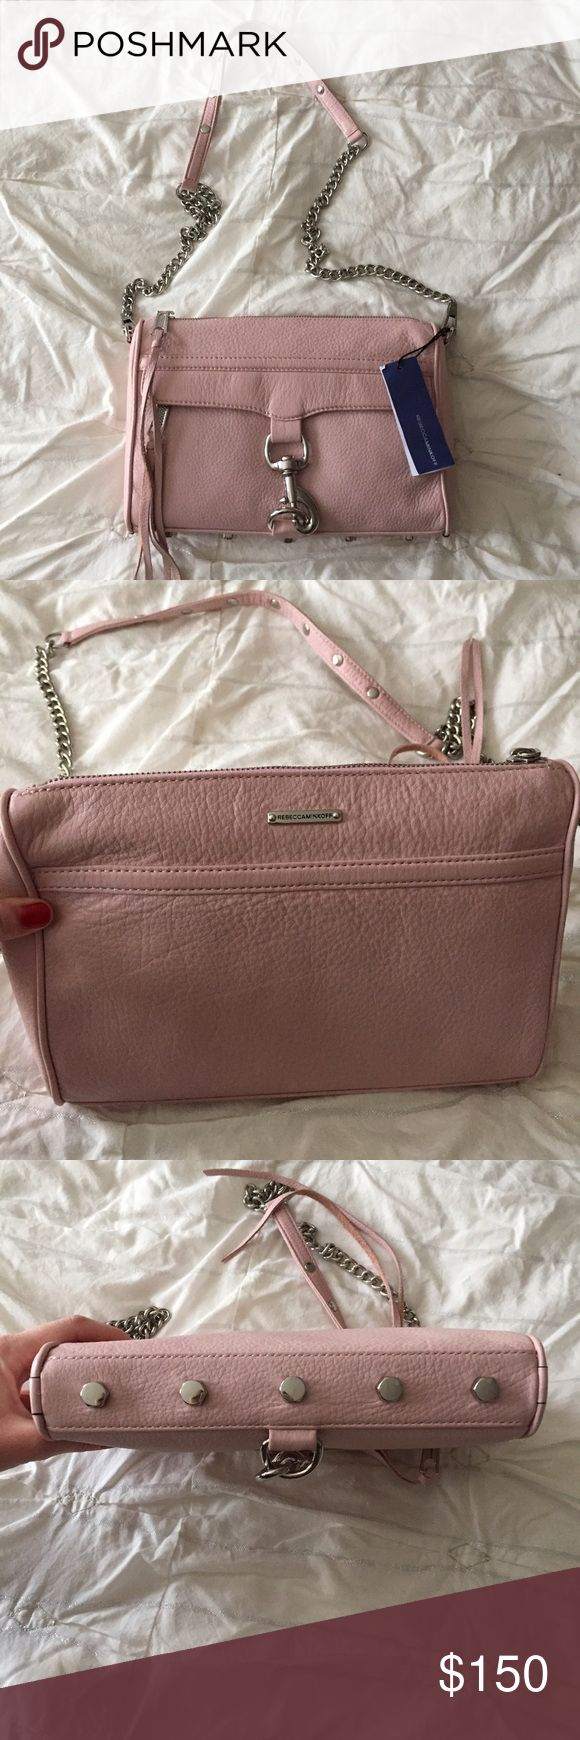 "Rebecca Minkoff Bag NWT Rebecca Minkoff M.A.C. crossbody bag. Roomy but compact. Light pink with silver hardware. 21"" chain strap drop. Genuine leather. Bag dimensions- 11"" L 8"" H 2"" D. Interior pockets and hidden exterior zip pocket underneath front flap. Beautiful bag that retails $295. No trades. Rebecca Minkoff Bags Crossbody Bags"